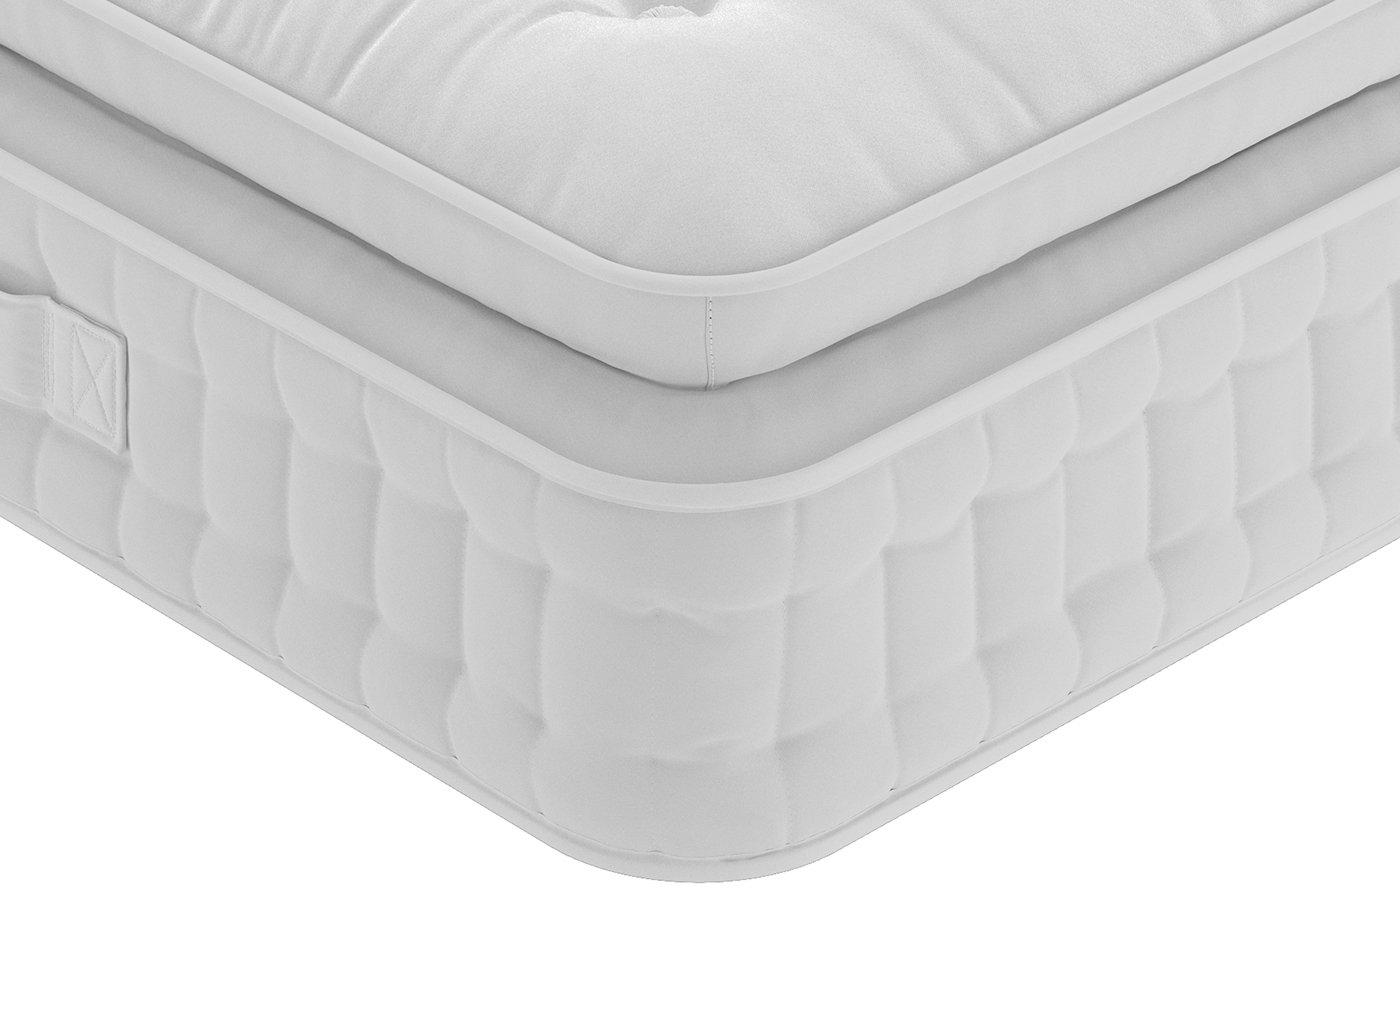 Flaxby nature's finest 5900 2'6 mattress medium 2'6 small single